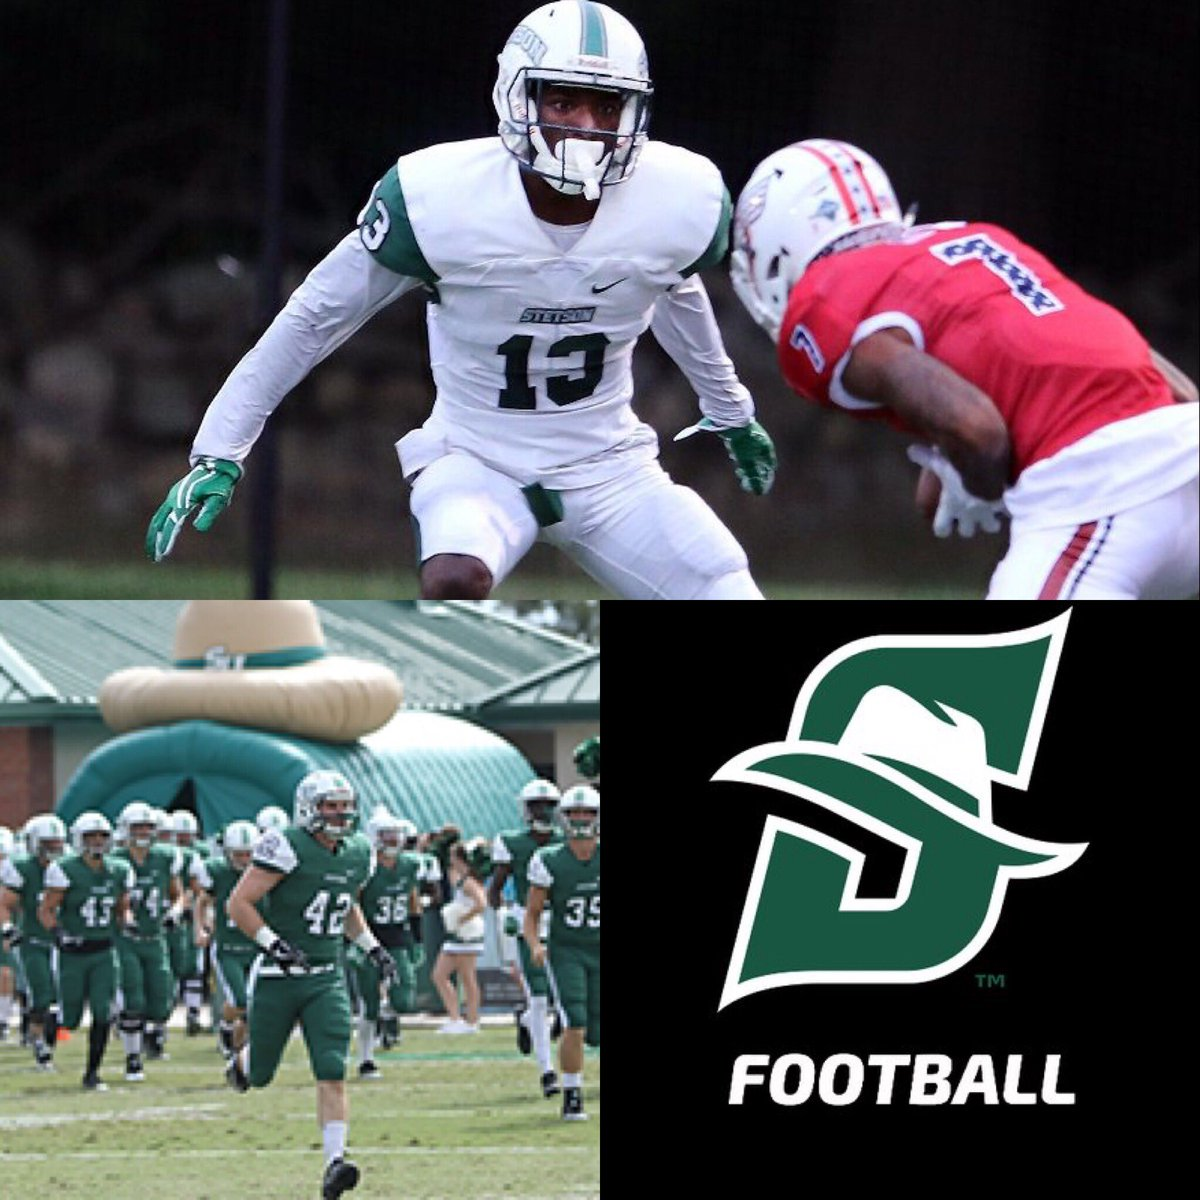 Thankful to receive first offer from Stetson University ‼️🙏🏾 @EHill80 @DHS_Titans @coachbkyoung @RecruitGeorgia